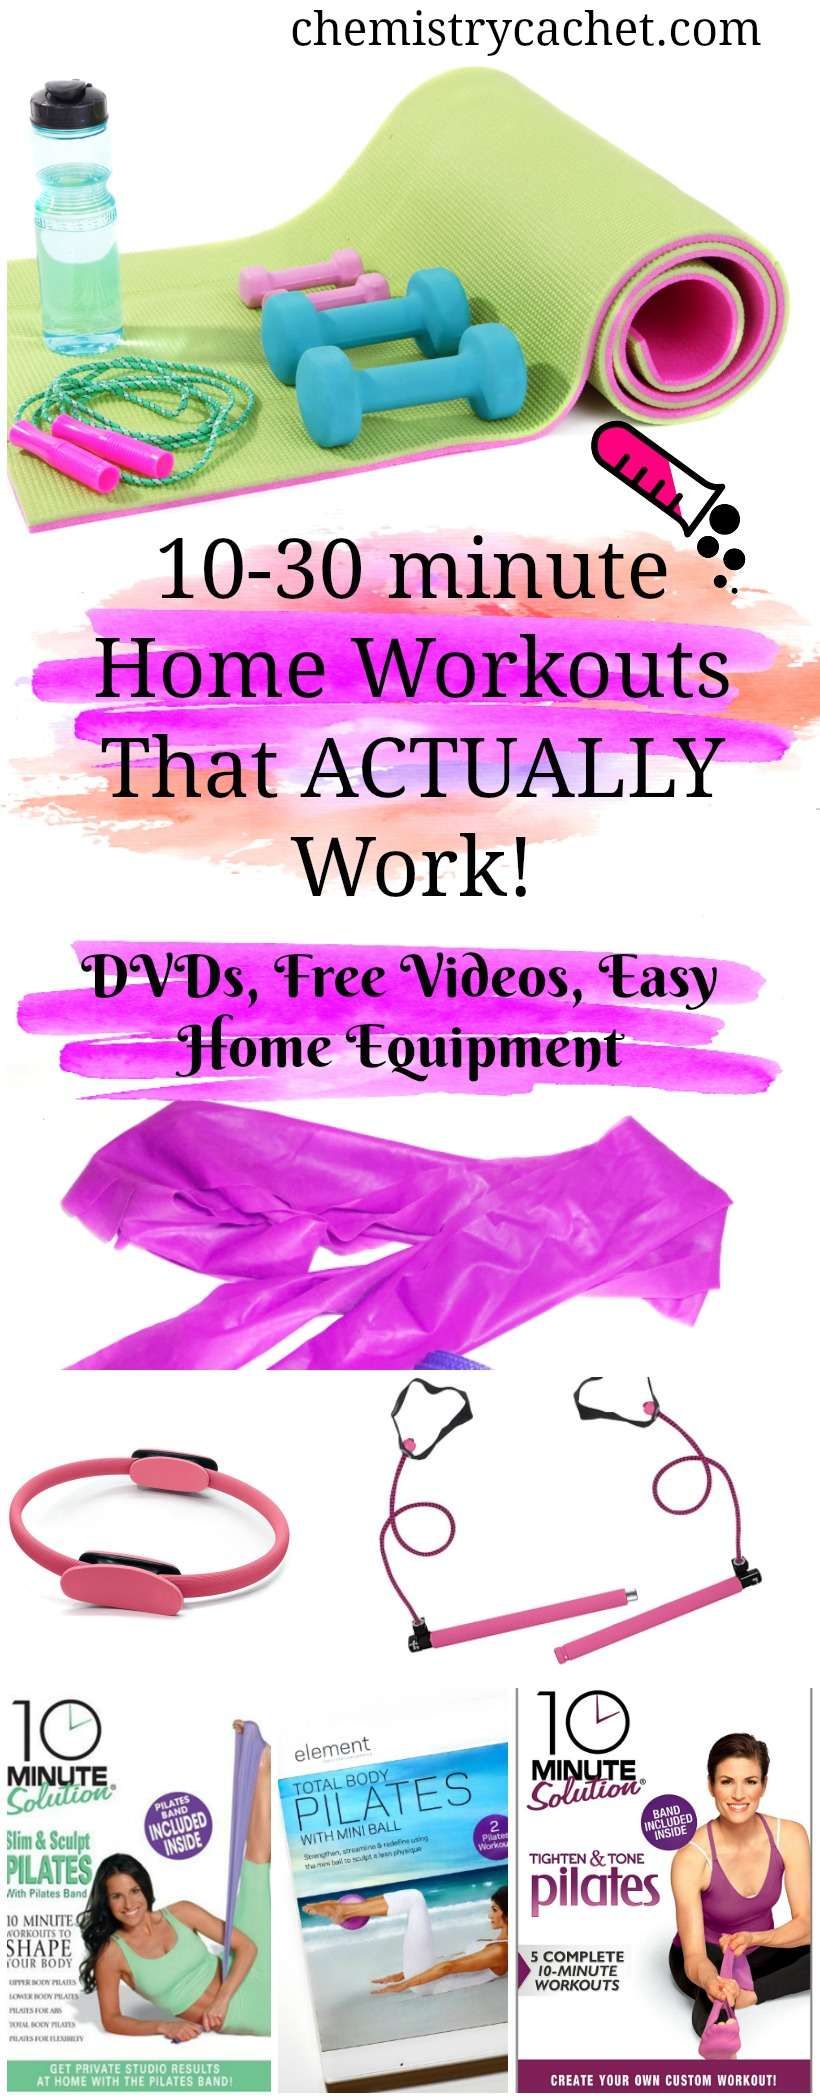 10-30 minute home workouts that actually work! Home workout videos, dvds, and easy to use equipment even for those who have physical limitations on chemistrycachet.com